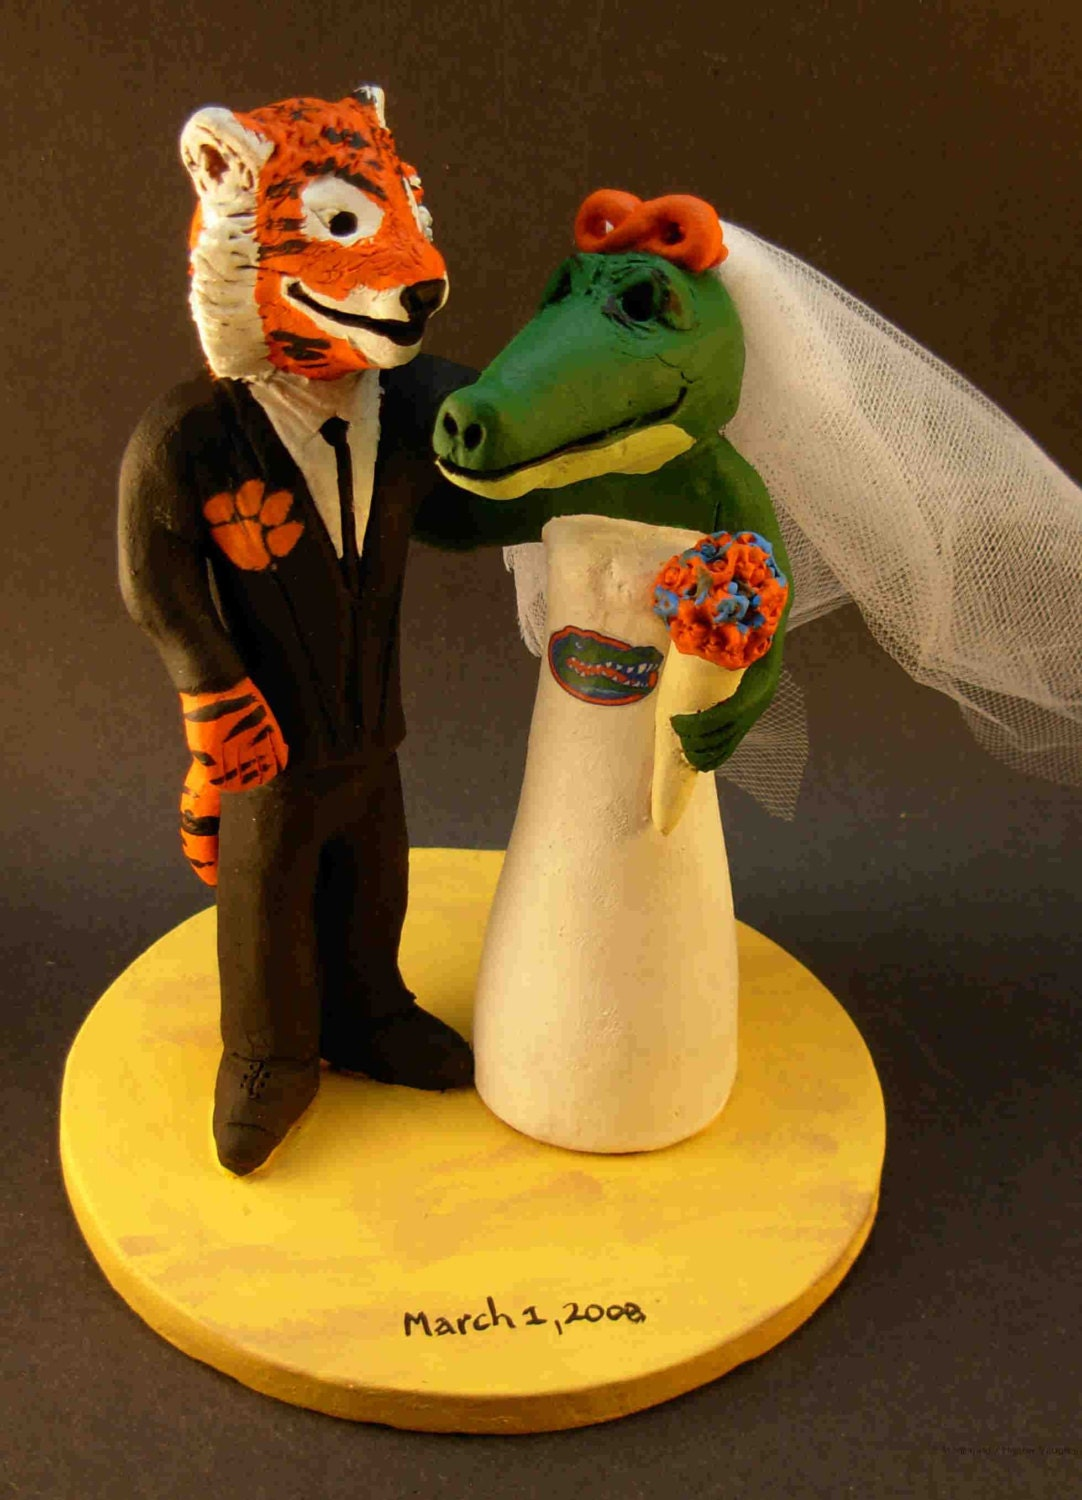 Clemson Tiger Groom Marries Florida Gator Bride, Alligator Bride ...